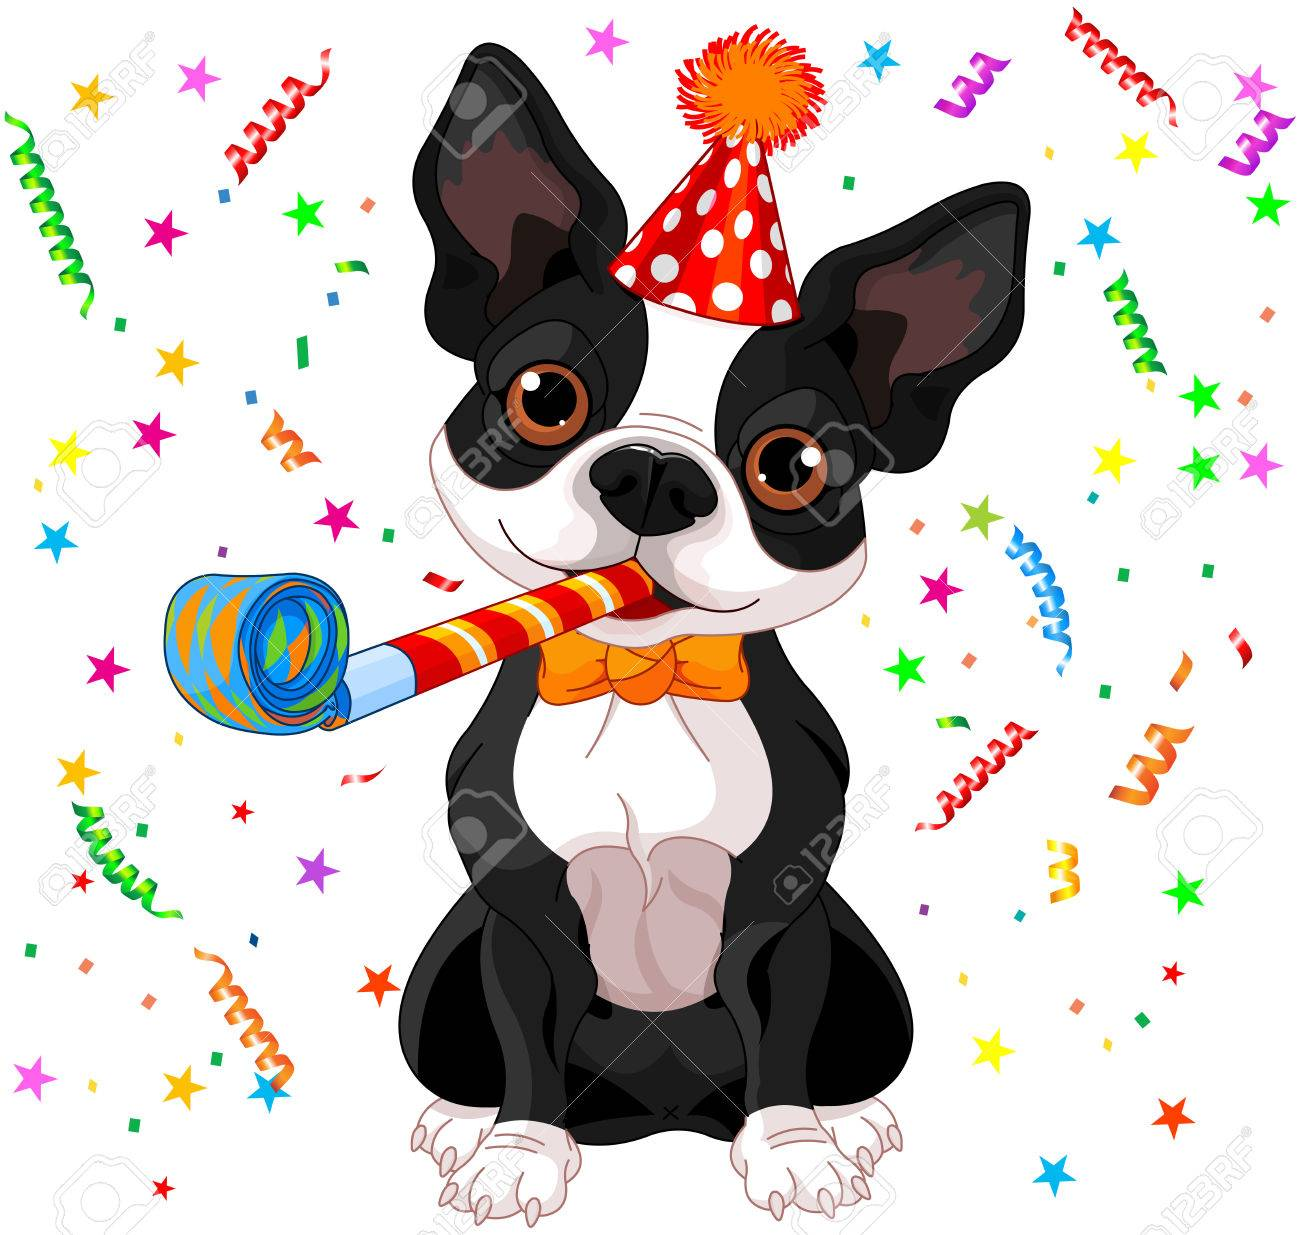 LA LEISHMANIOSE - Page 4 35588778-illustration-of-cute-boston-terrier-celebrating